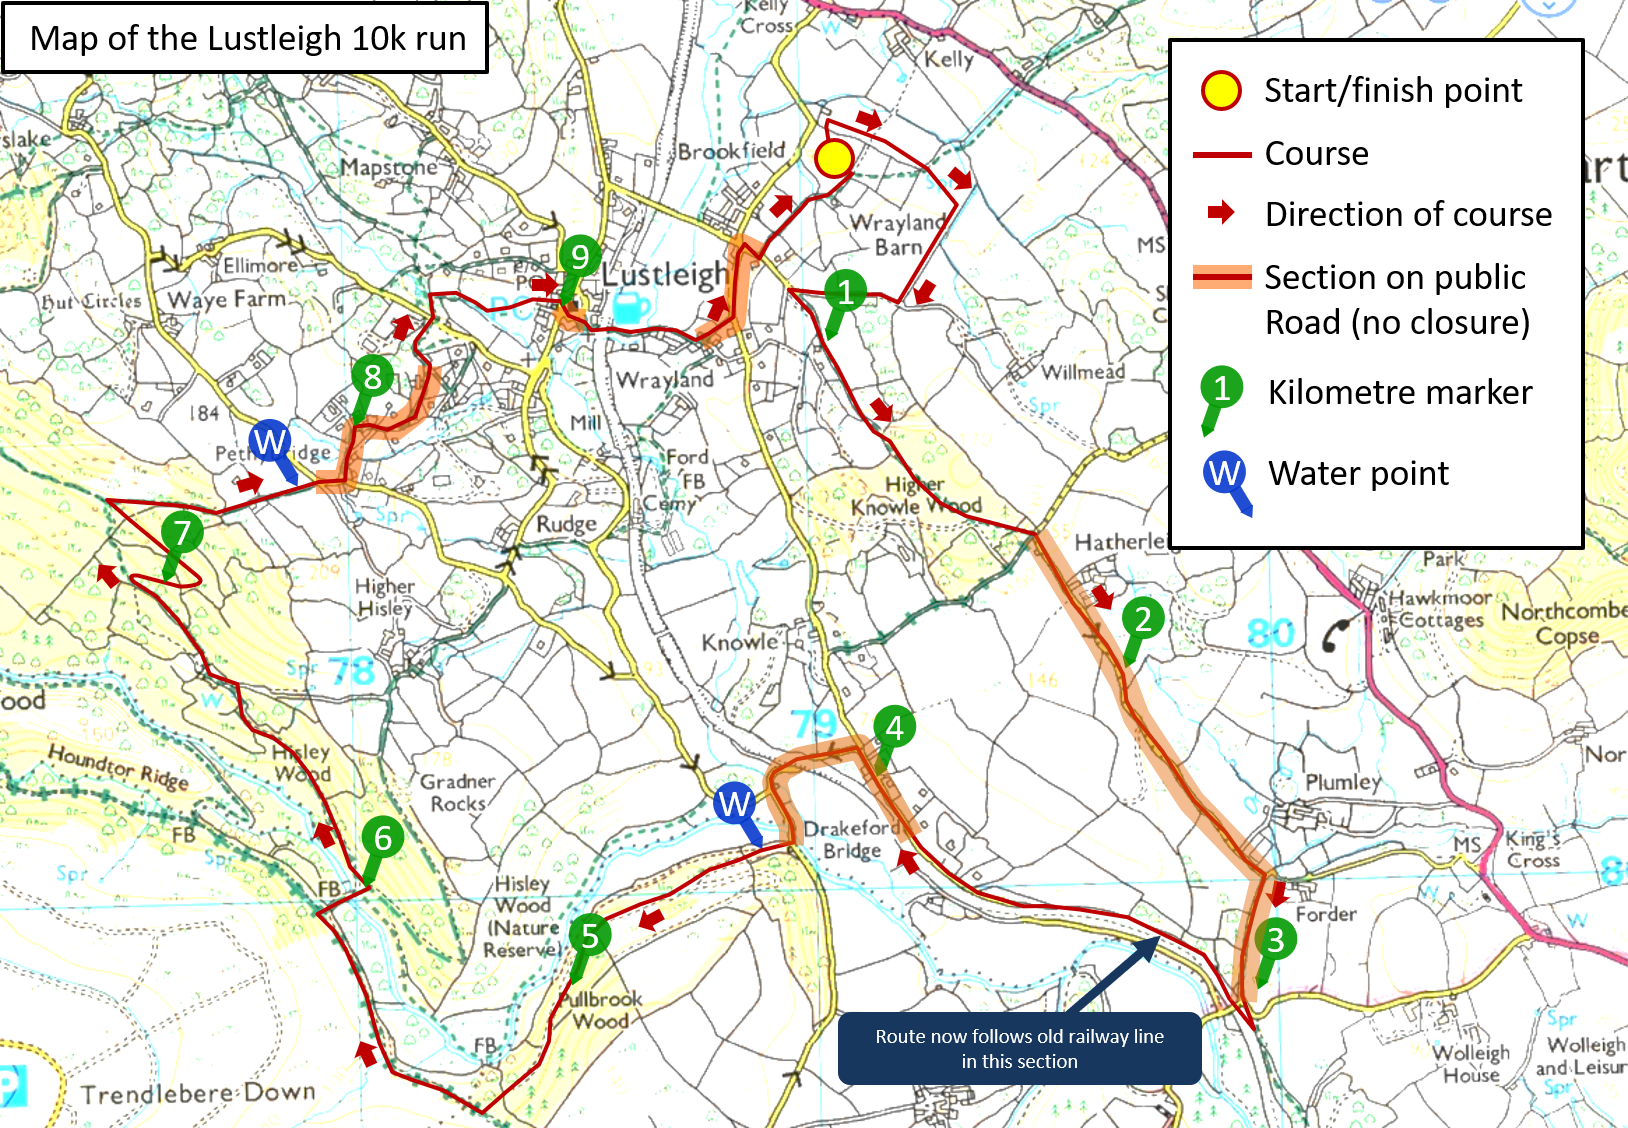 Map of the 10k route for 2018